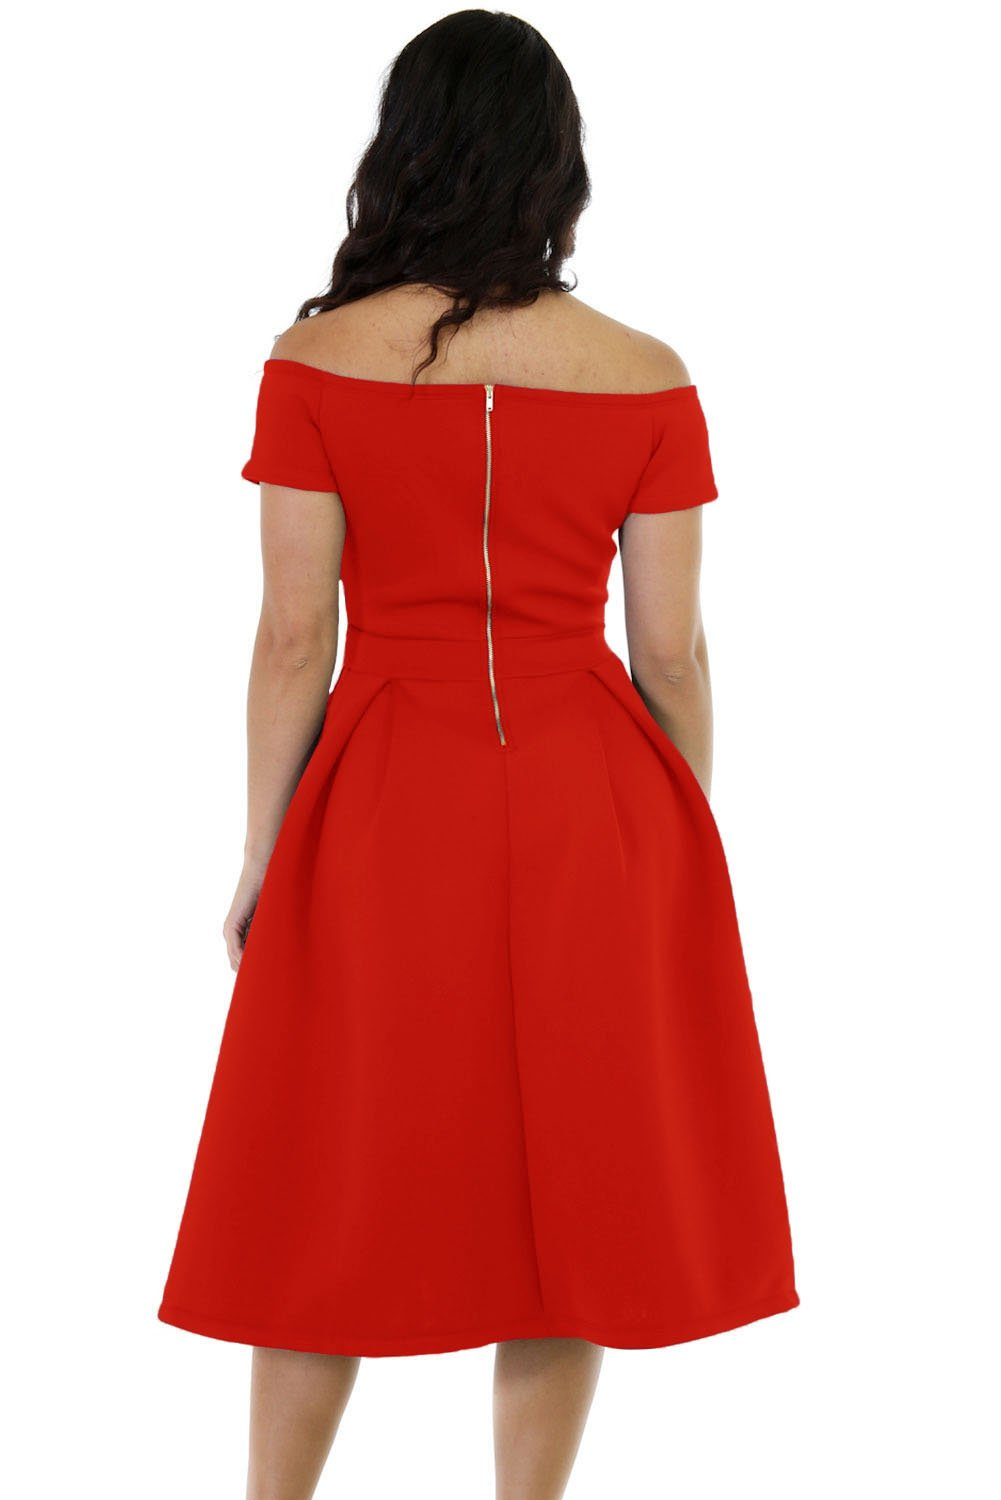 bb44ce91a3 Lalagen Women s Vintage 1950s Party Cocktail Wedding Swing Midi Dress